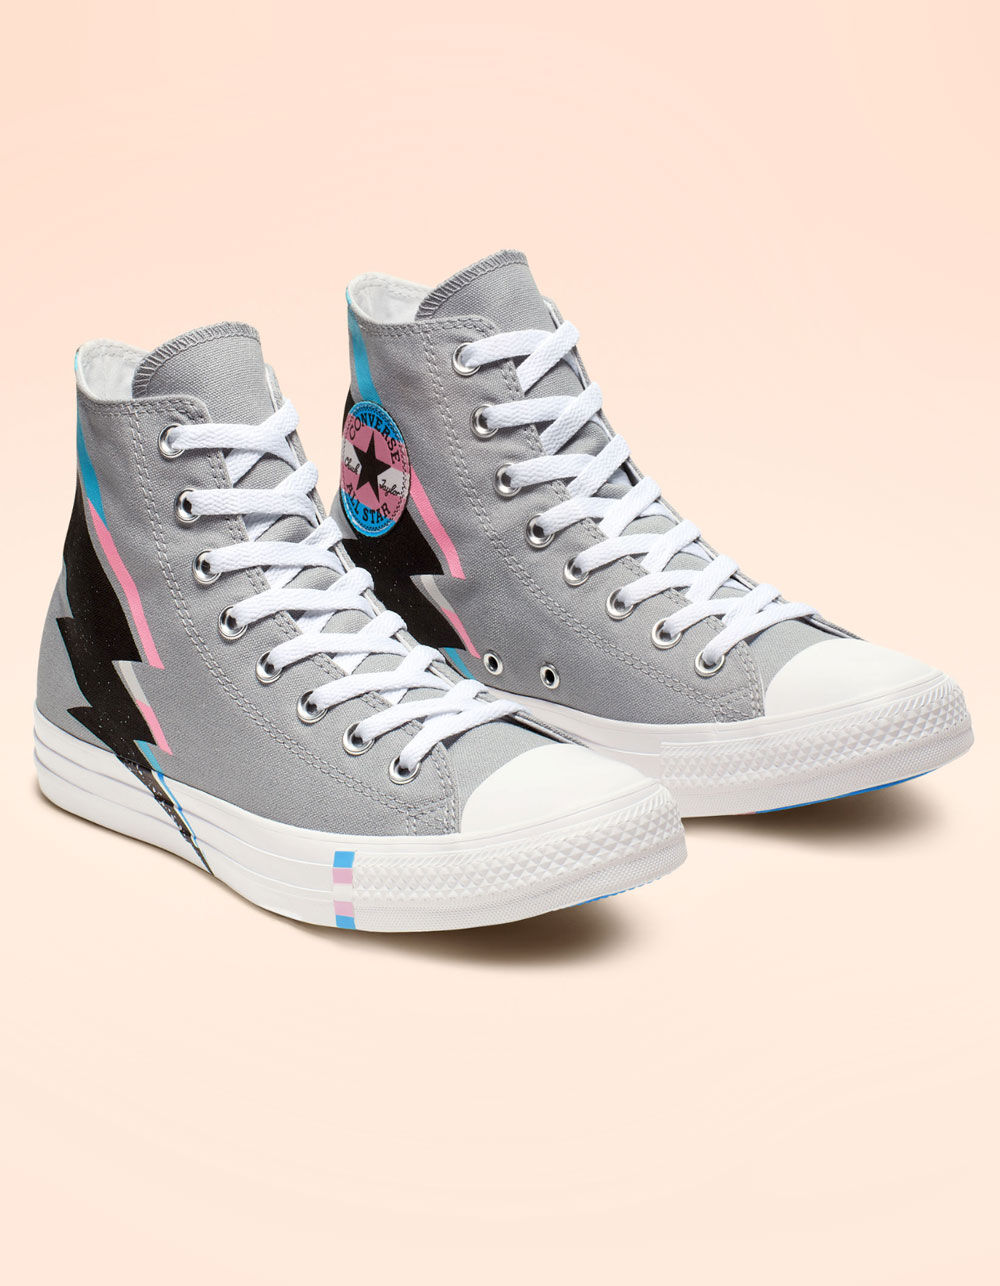 Image of CONVERSE CHUCK TAYLOR ALL STAR PRIDE WOLF GRAY HIGH TOP SHOES